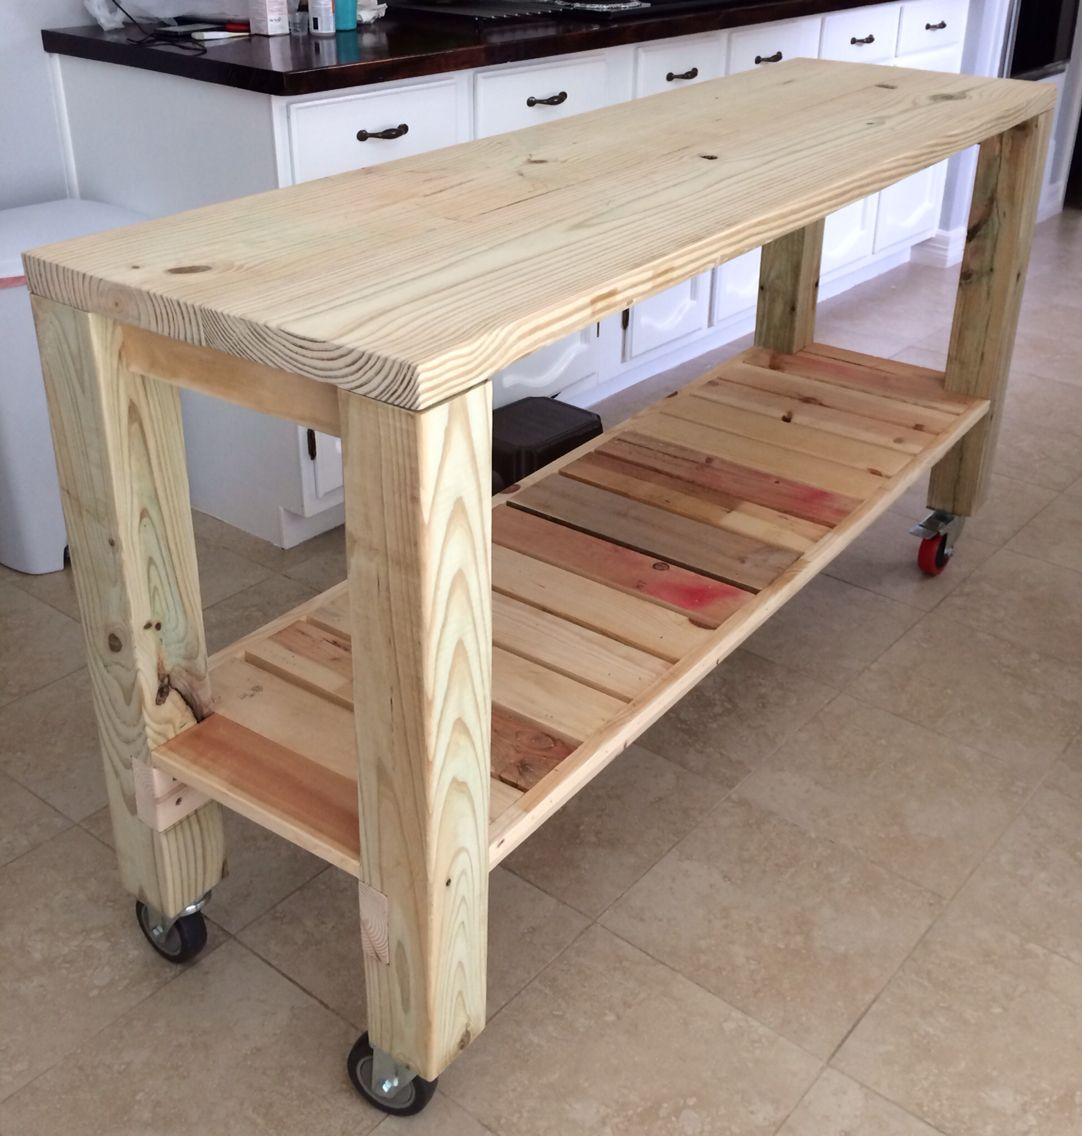 DIY Moveable Kitchen Island! | Diy furniture, Furniture ...